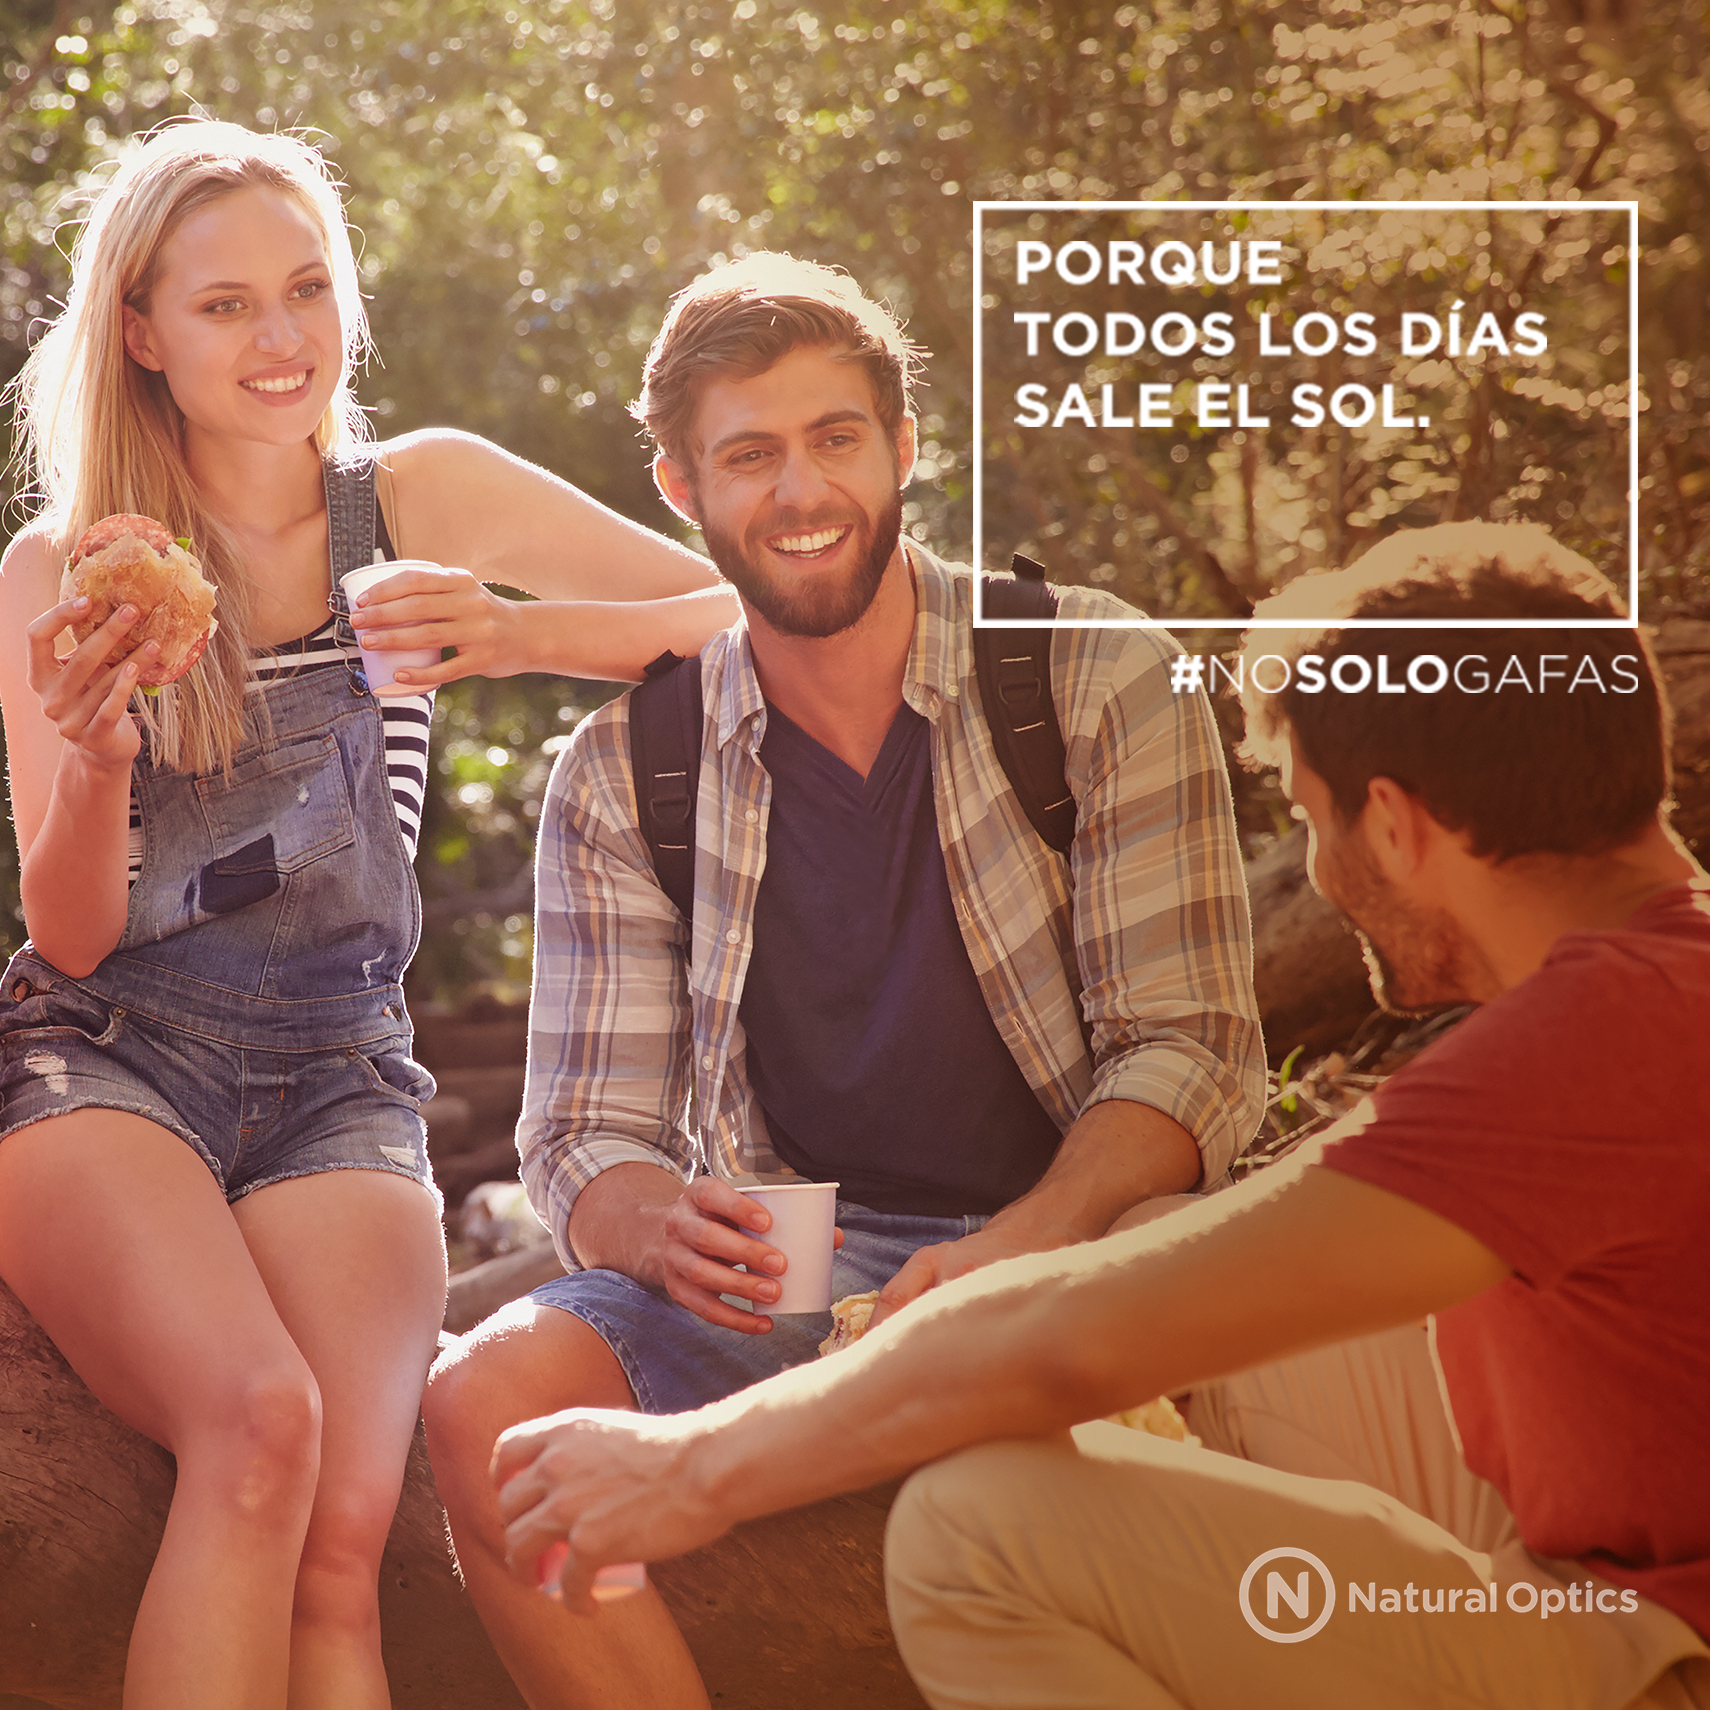 Campaña de sol 2016 en Natural Optics